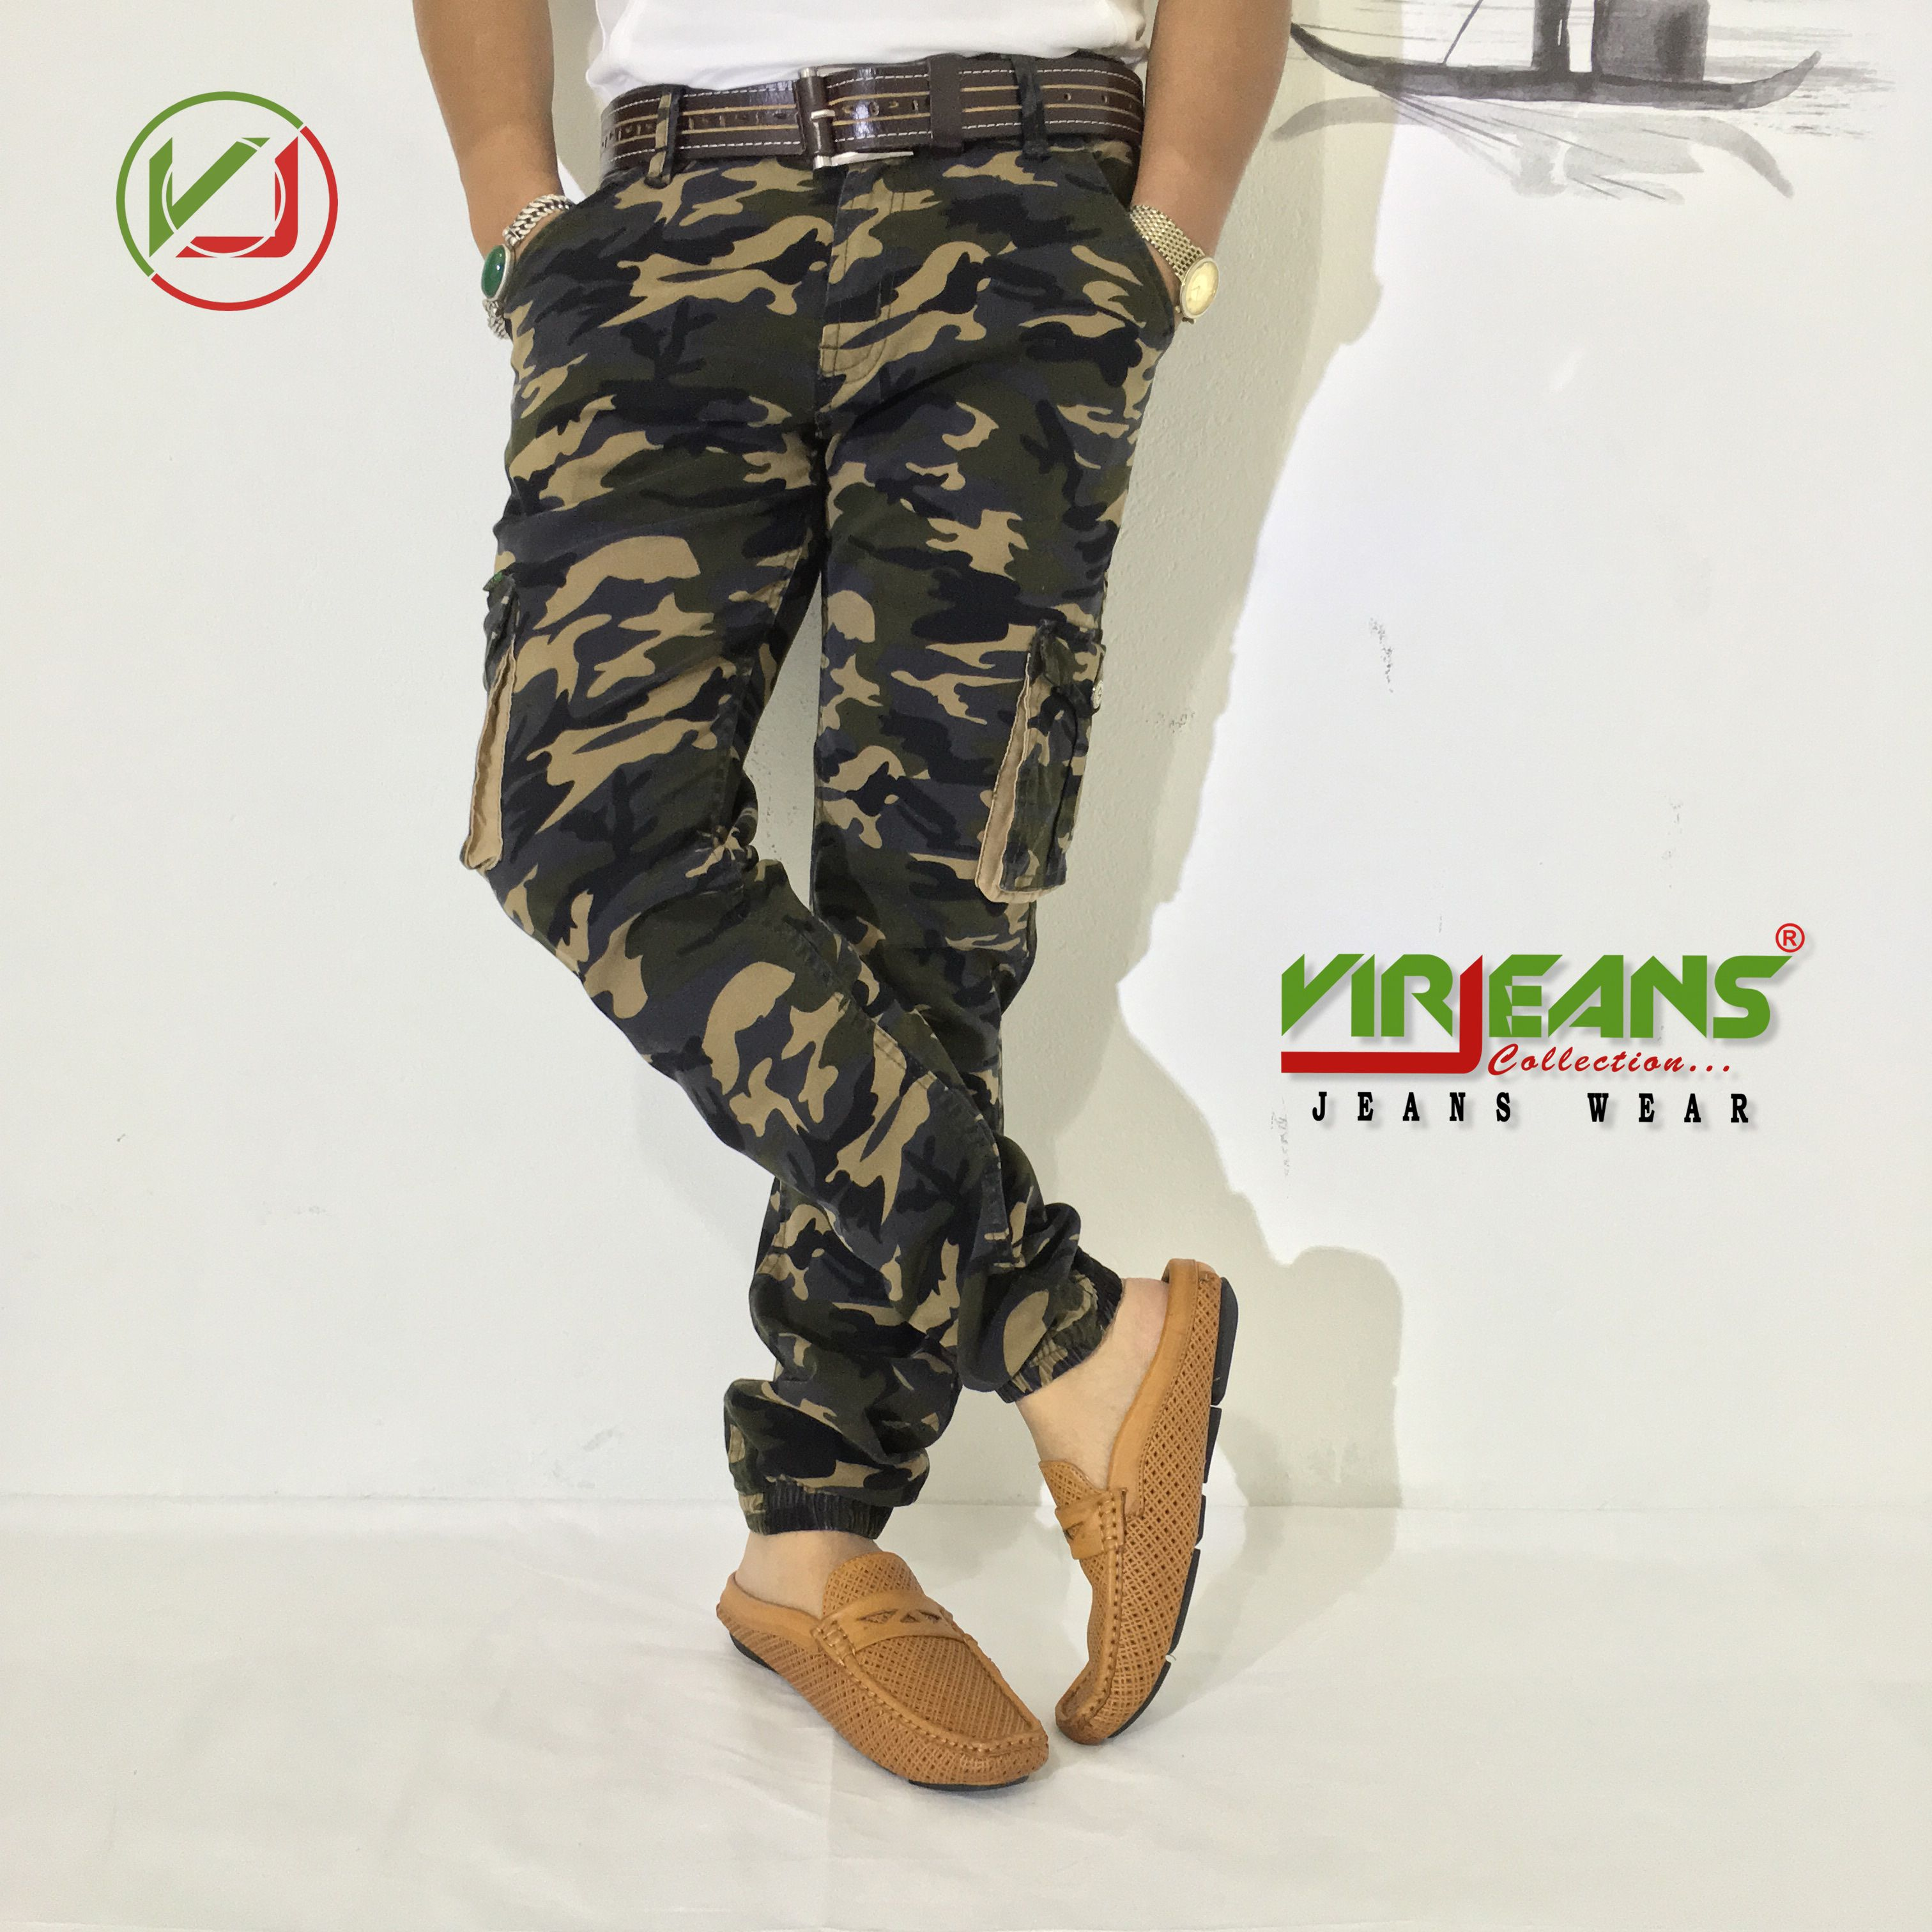 Virjeans Jeans In Nepal Branded Jeans Nepal Fashion In Nepal Popular Clothing Brands Top Clothing Brands Clothing Brand